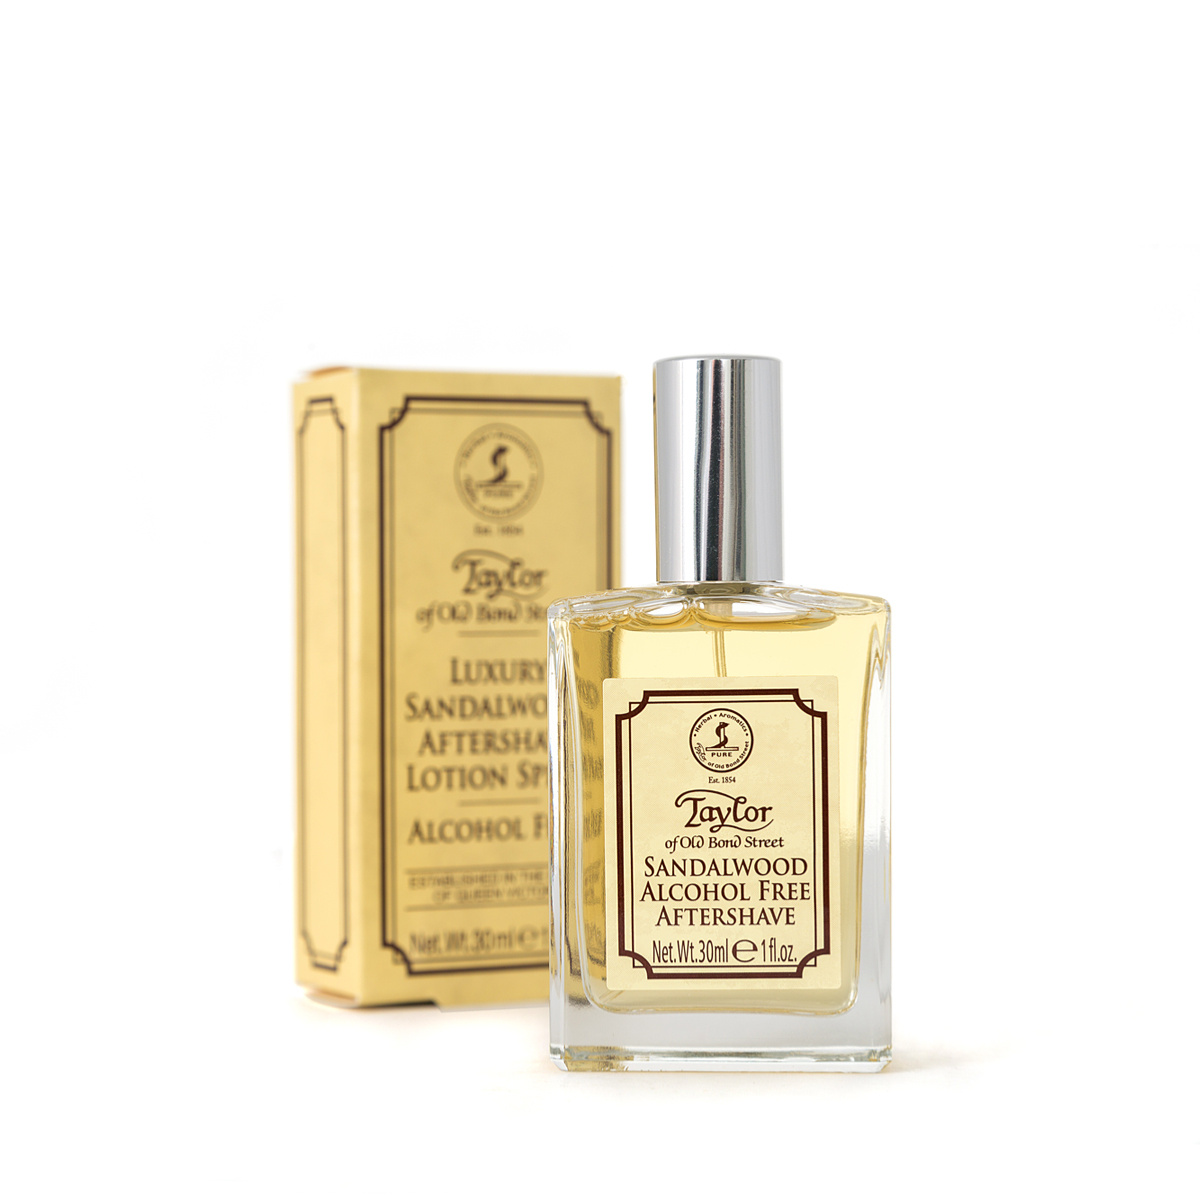 e287b92cbb8f Taylor of Old Bond St Sandalwood Alcohol Free Aftershave Lotion Spray (30ml)